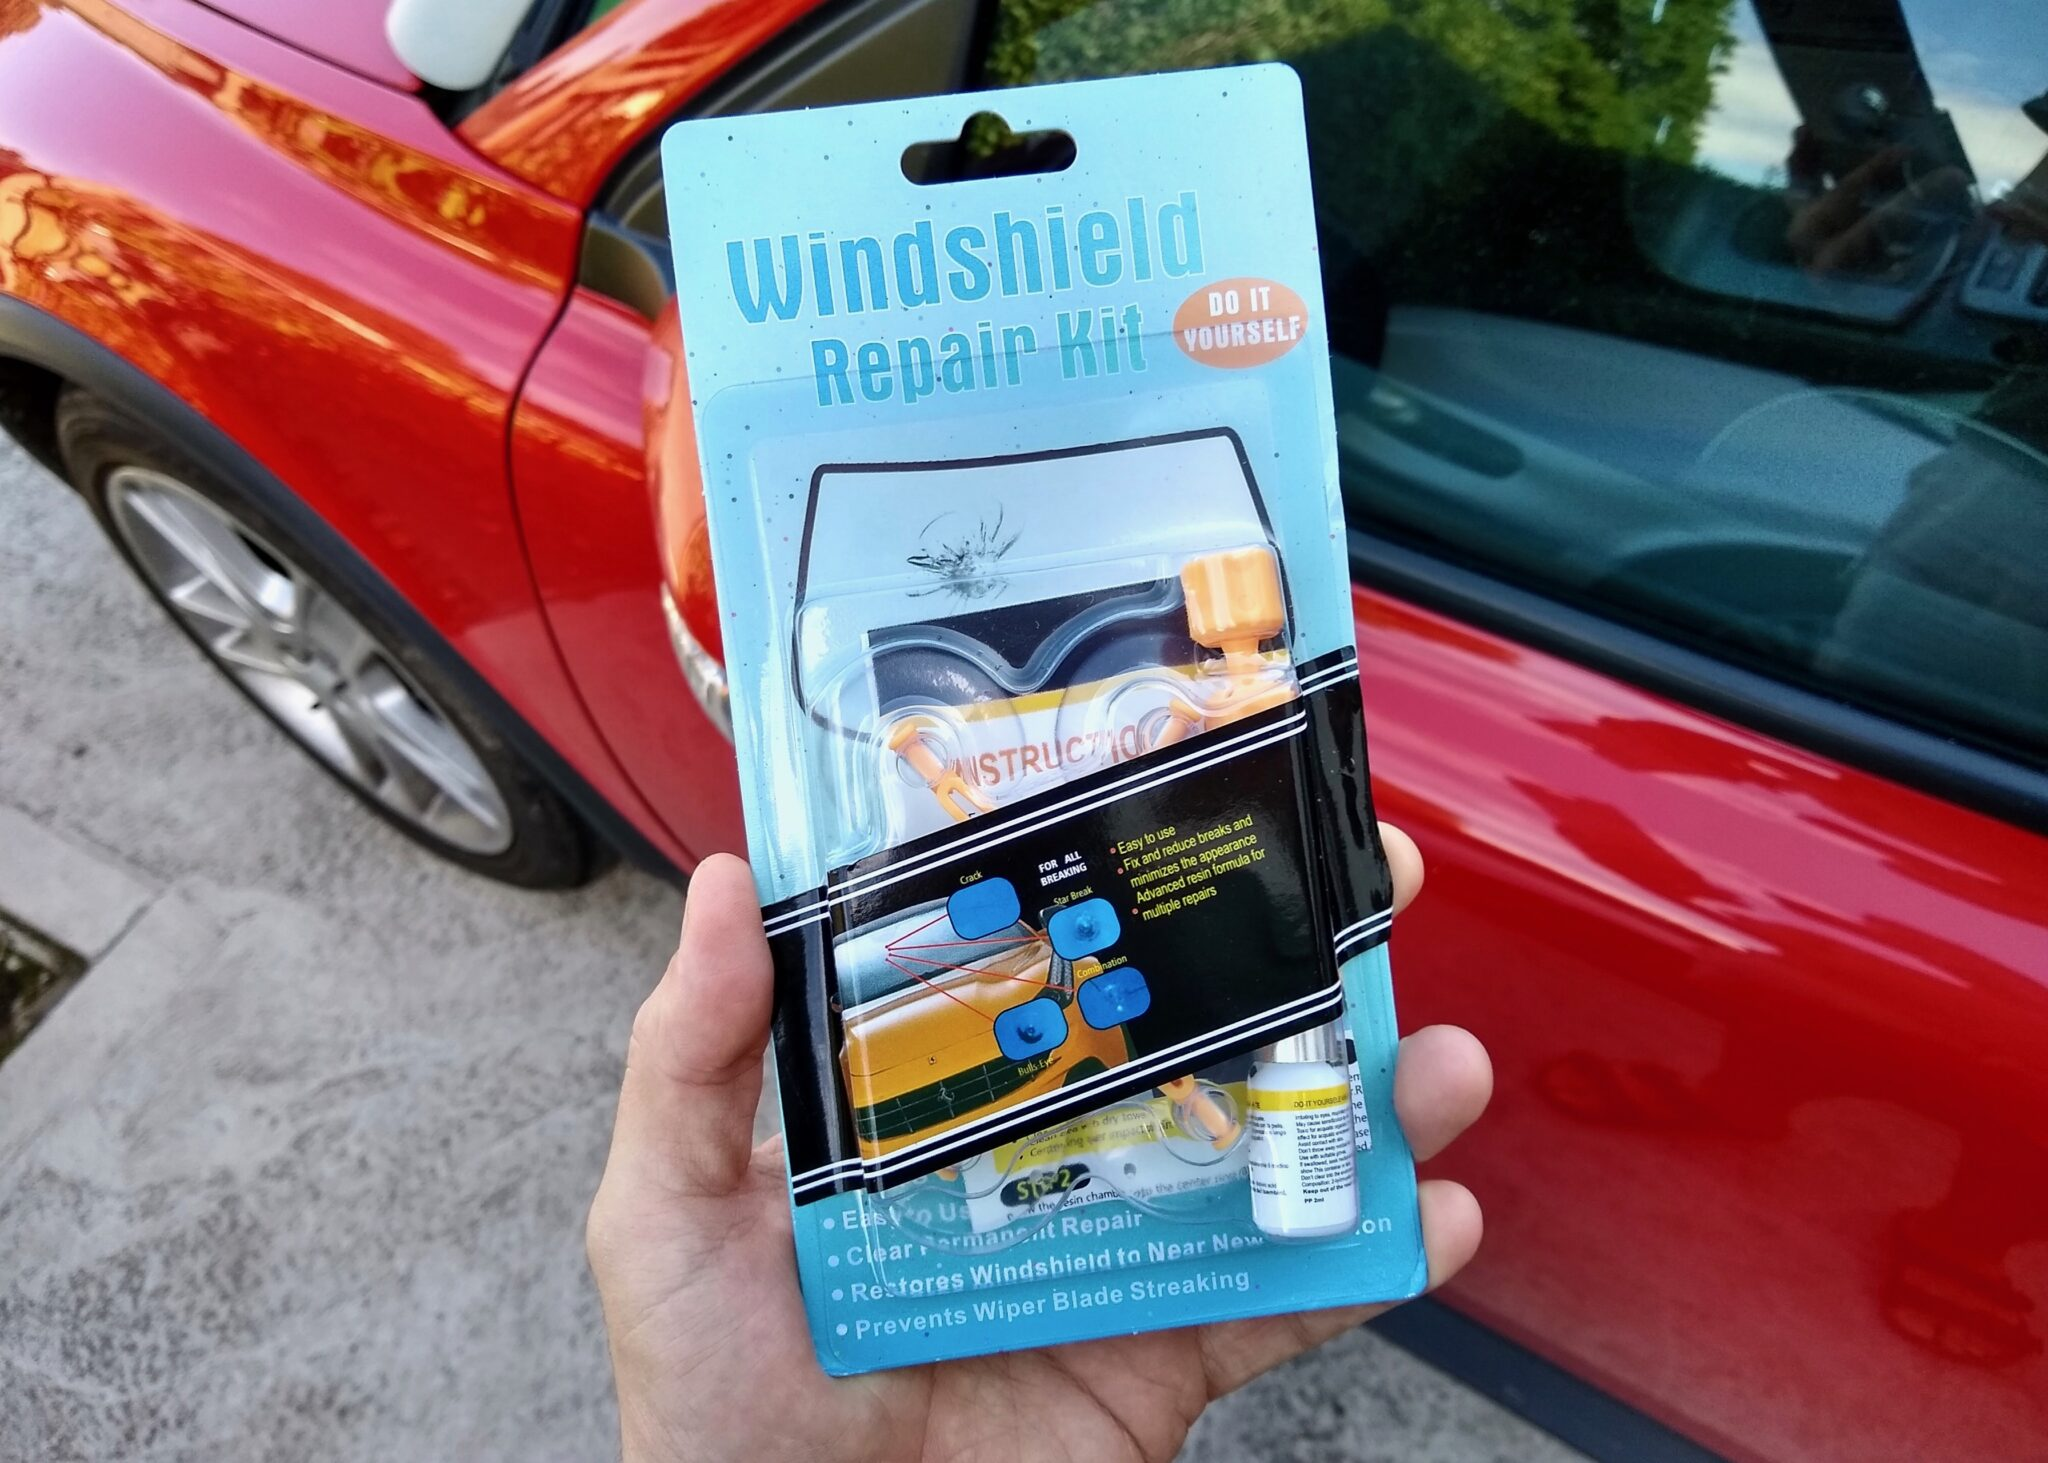 windscreen, repair kit, diy, do it yourself, glass repair, window repair, windscreen repair, windshield repair, crack, chip, stone chip, not 2 grand, n2g, not2grand, not2grand.co.uk